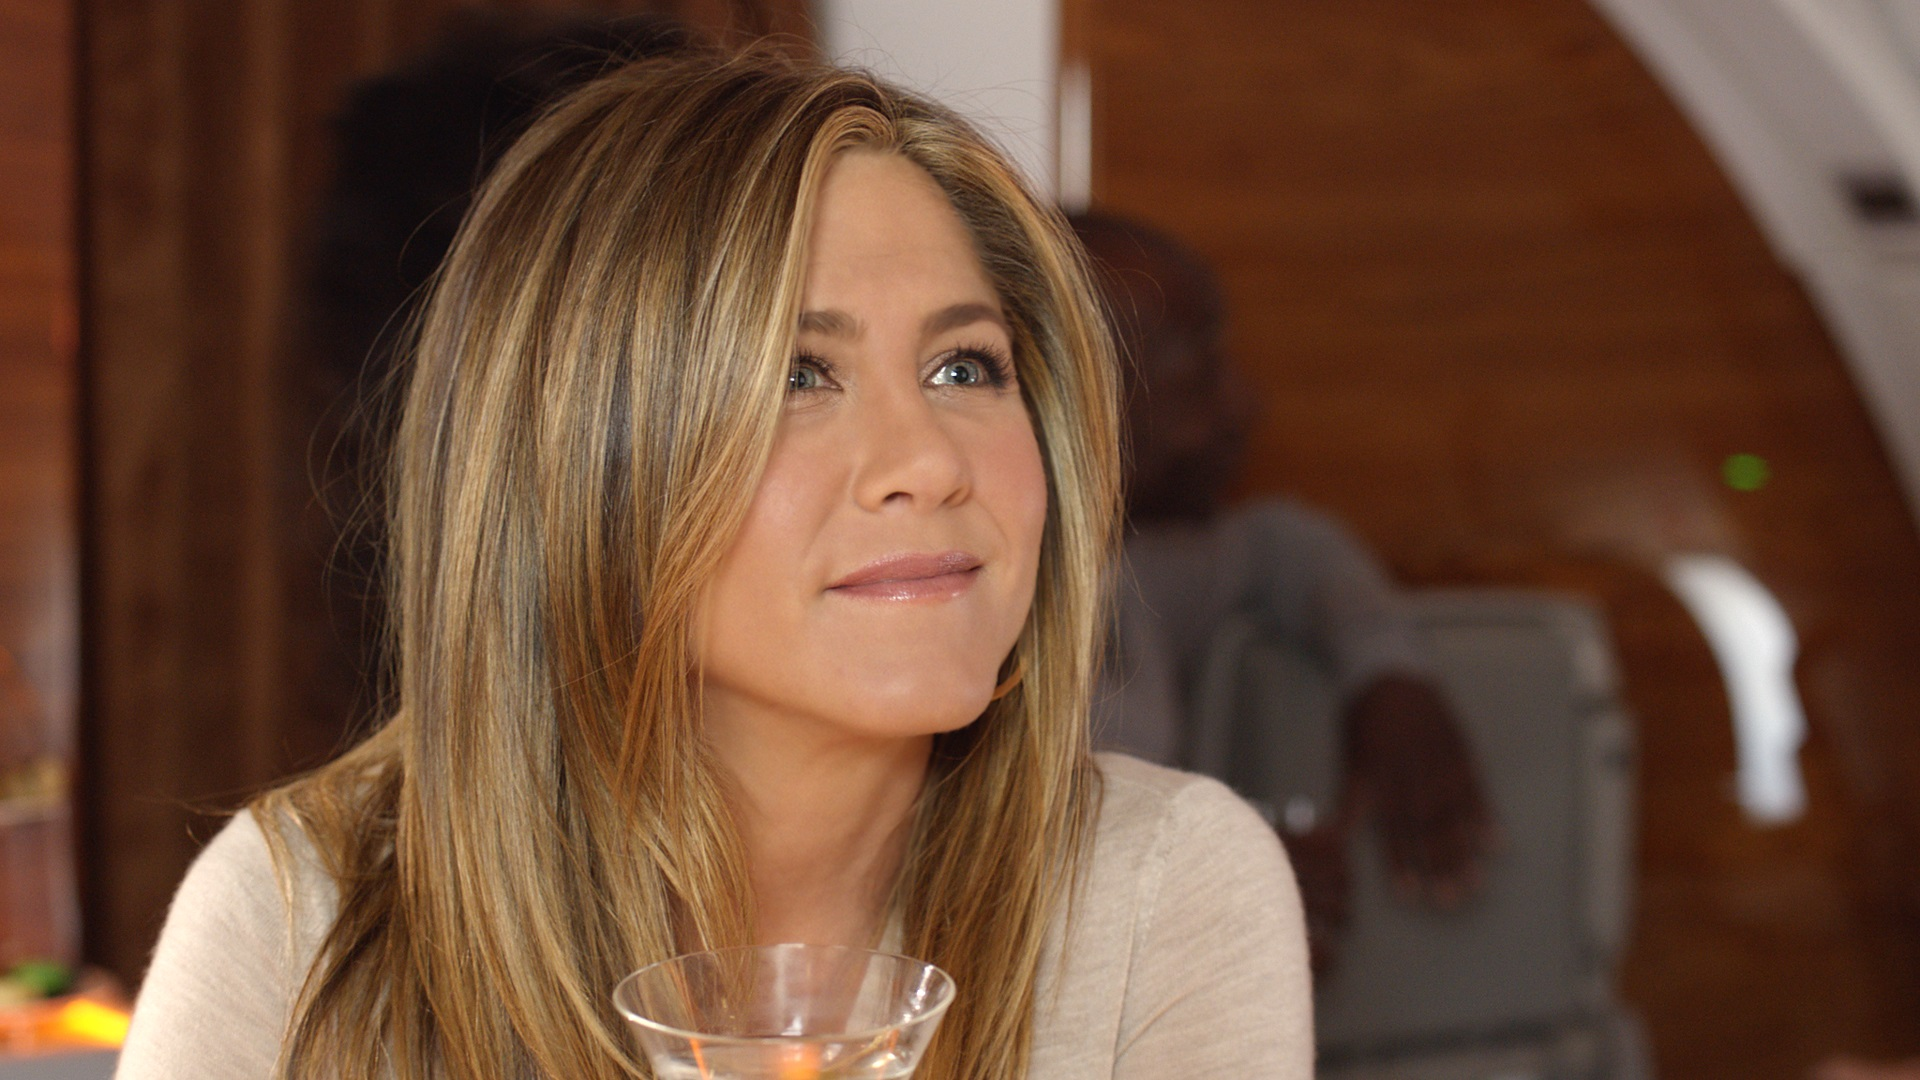 Emirates airlines fly out new ad with Jennifer Aniston